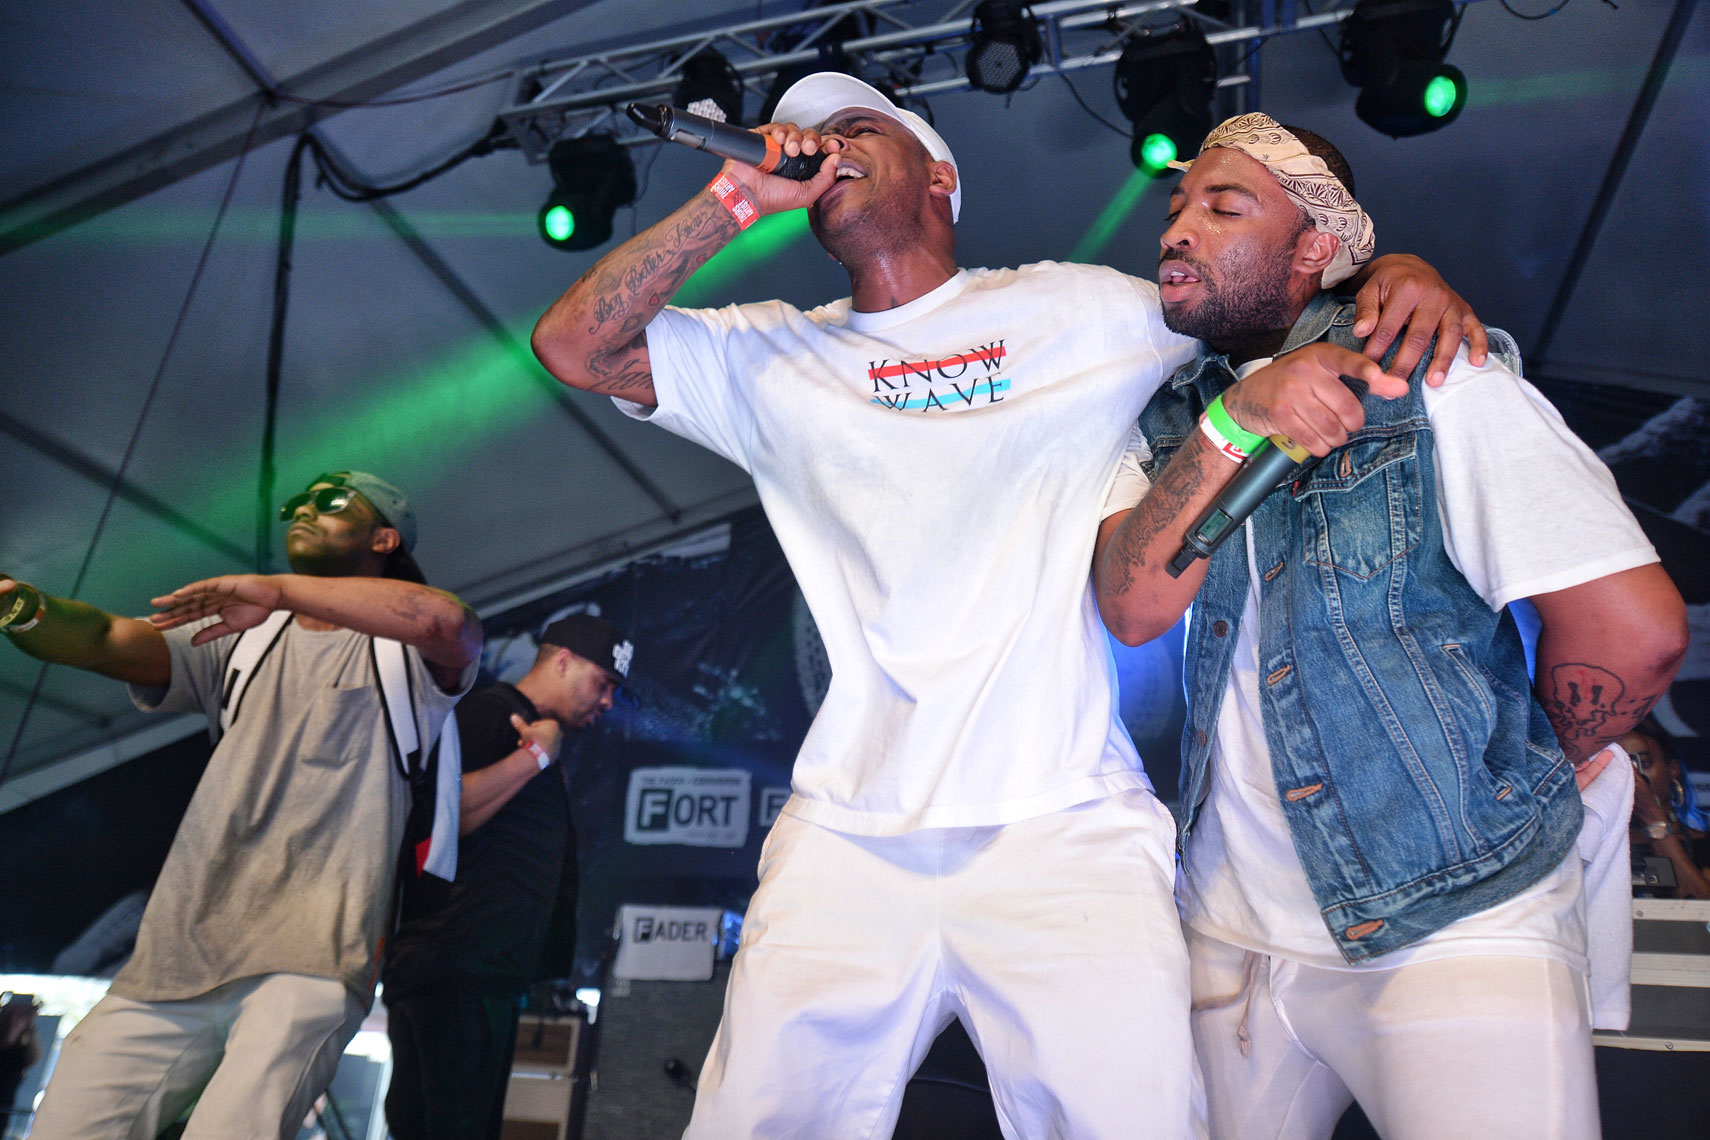 Skepta at FADER Fort during SXSW